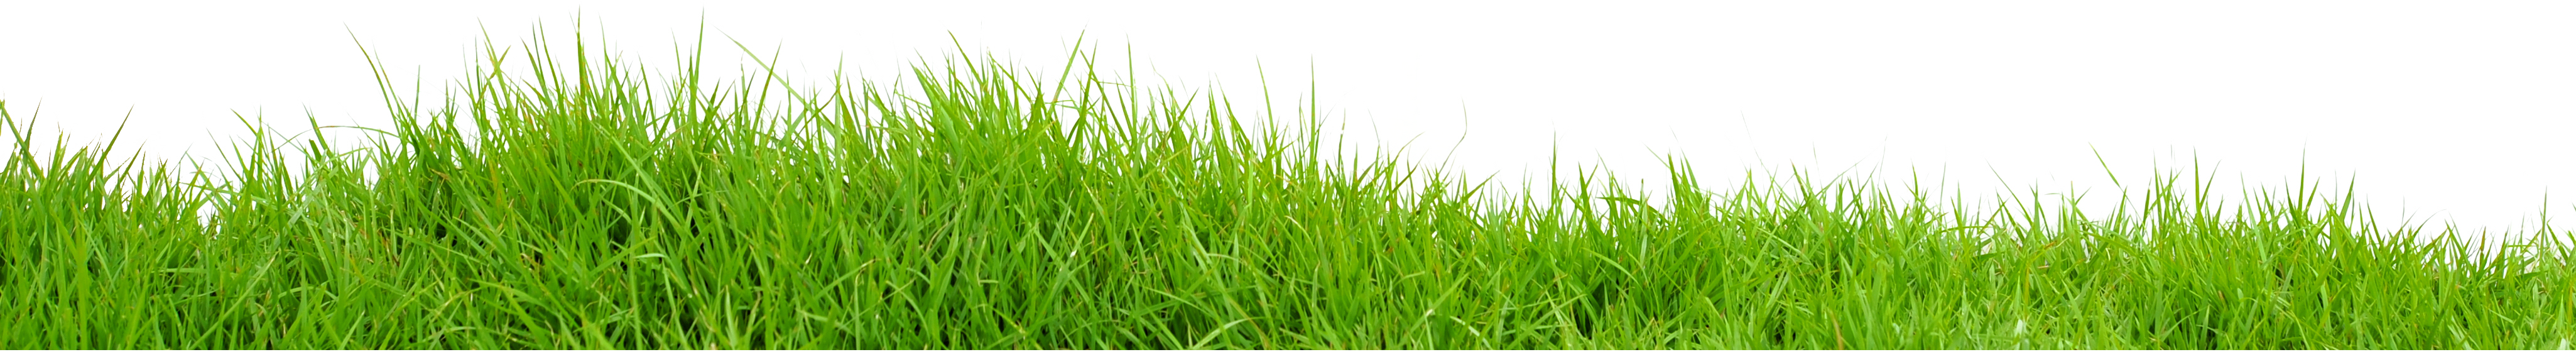 Grass background png. Free pictures images download